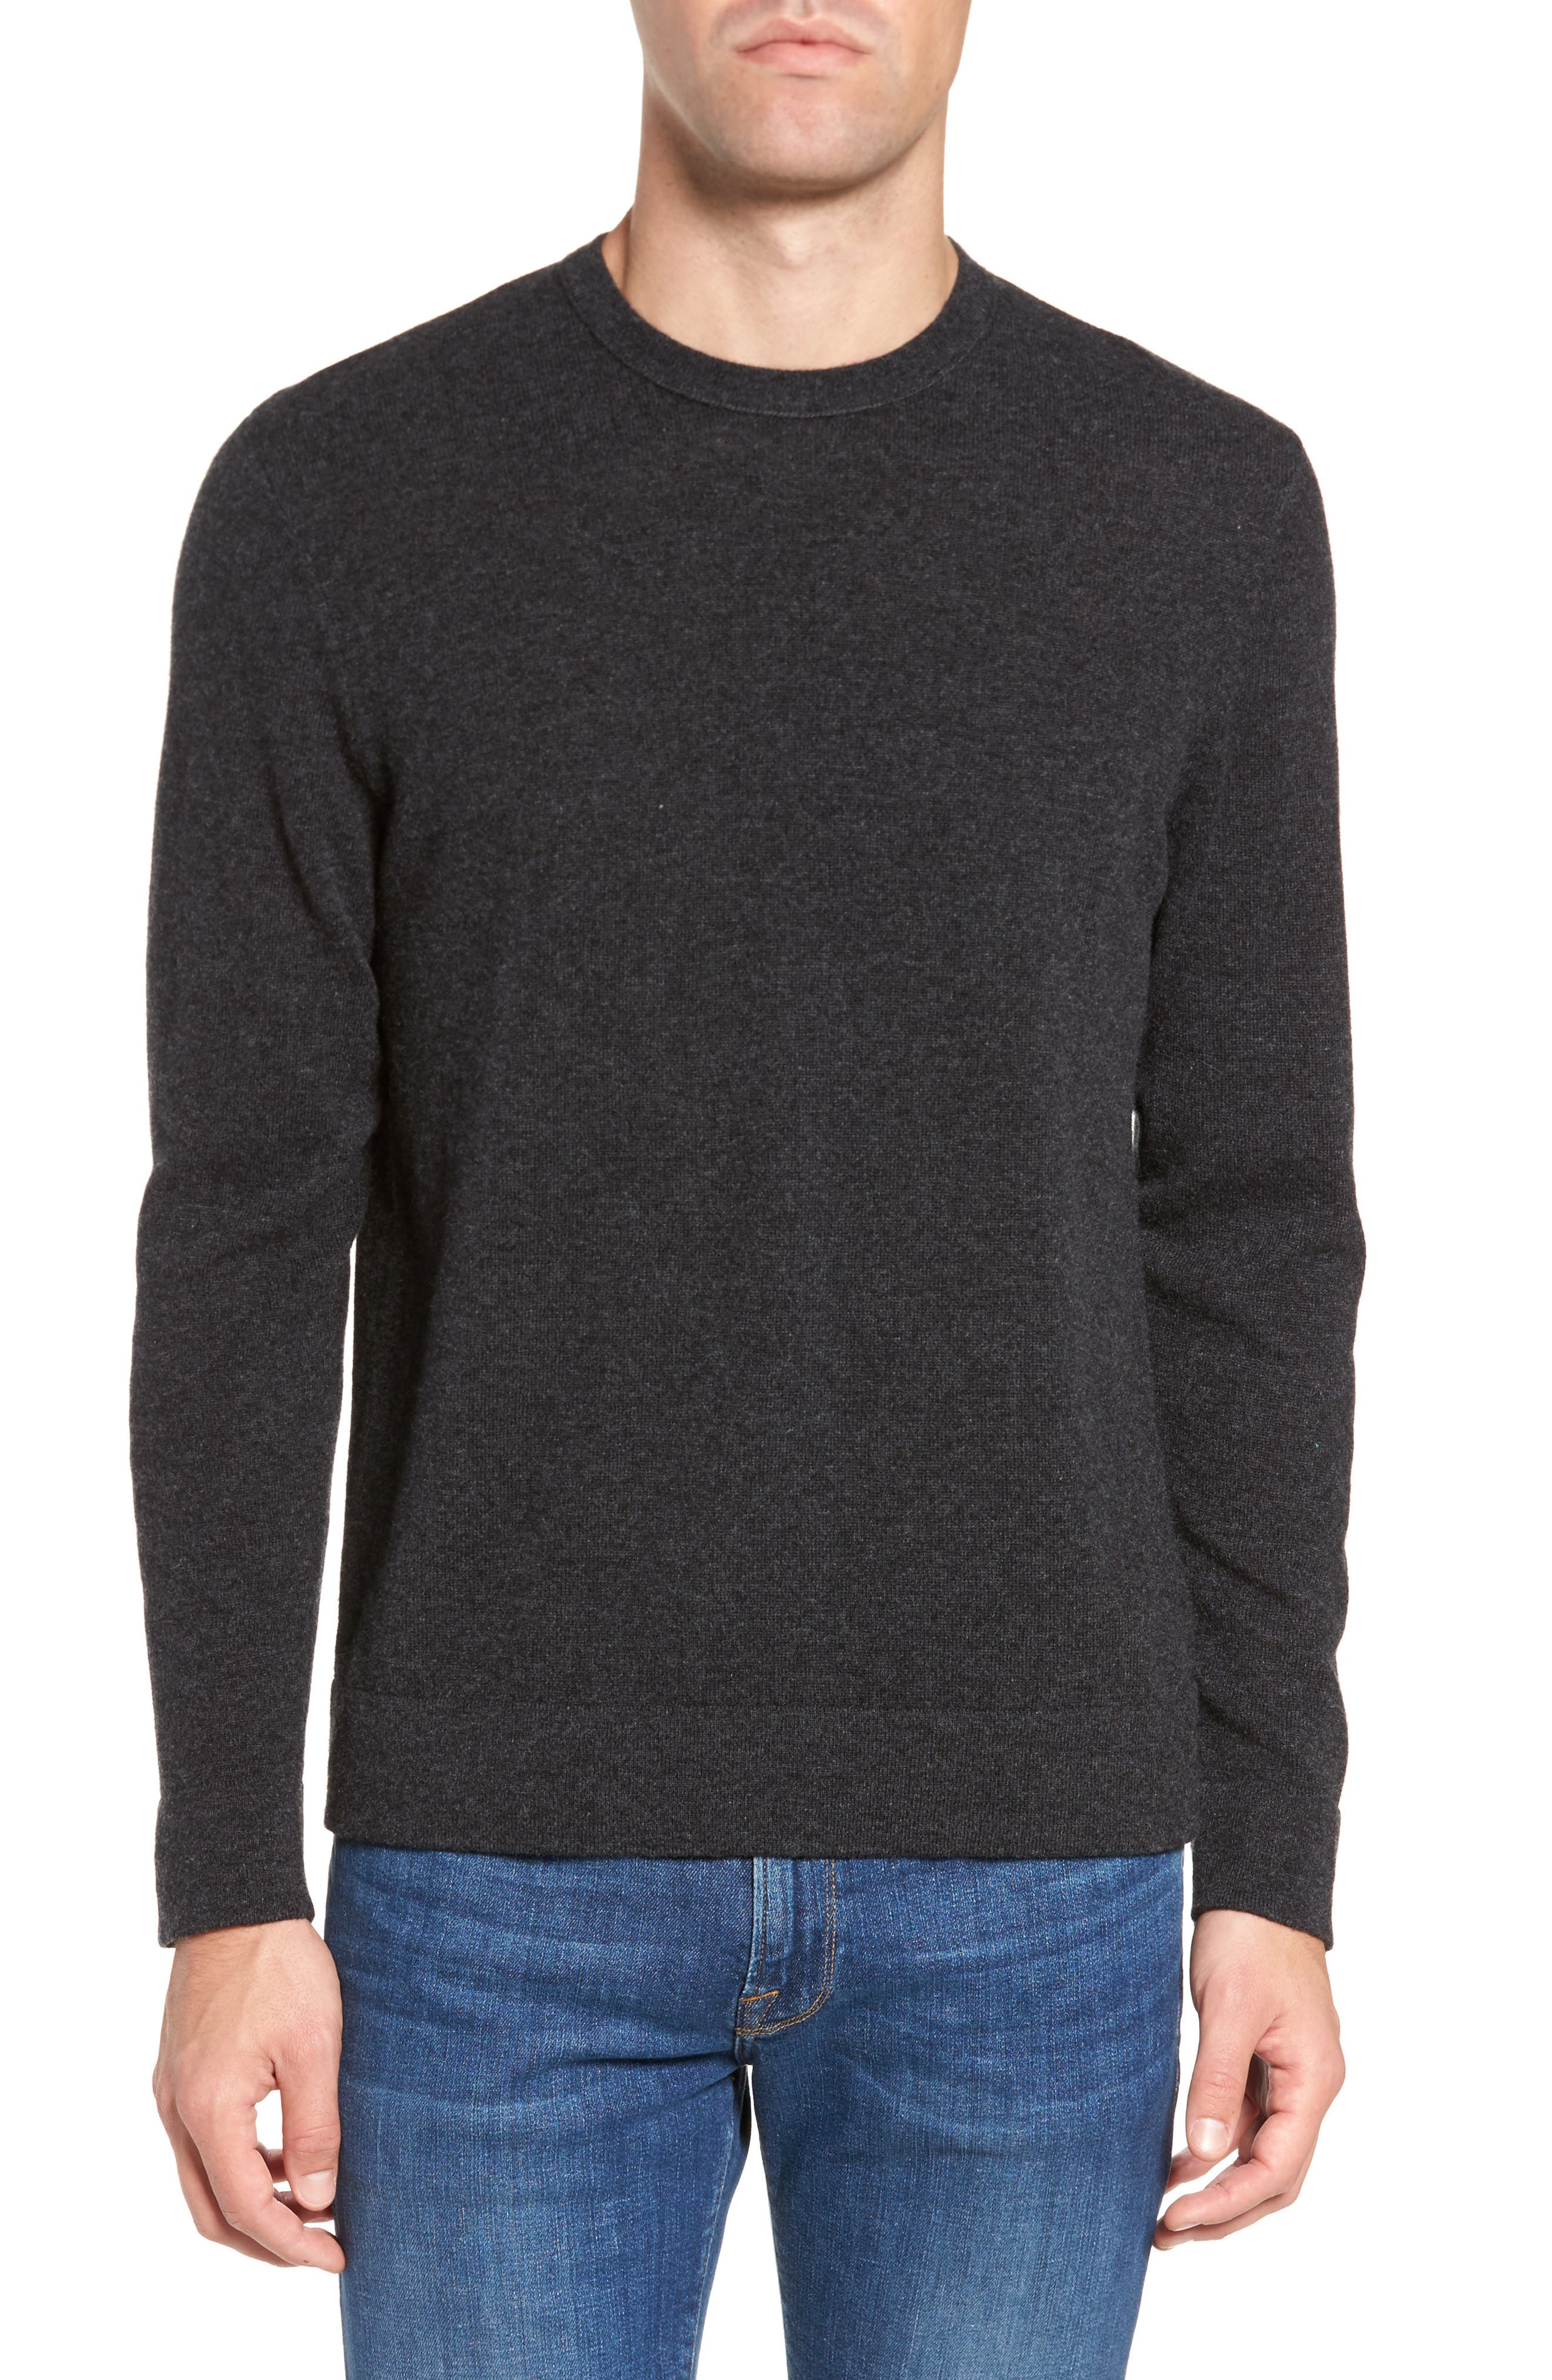 James Perse Intarsia Cashmere Sweater